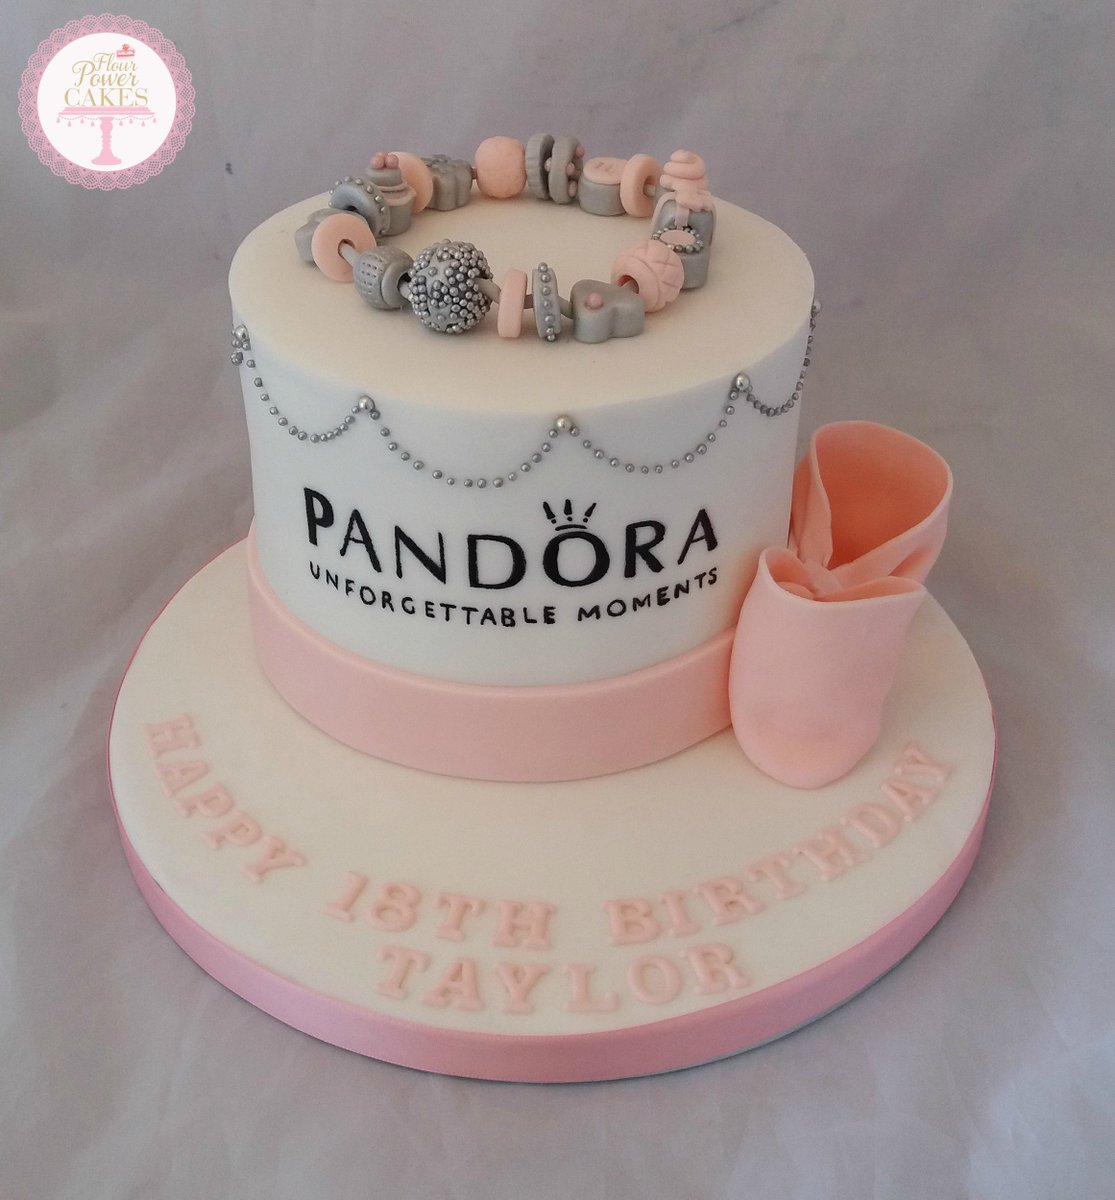 Australia Pandora Charms Uk Birthday Cakes F8474 Dc9d4